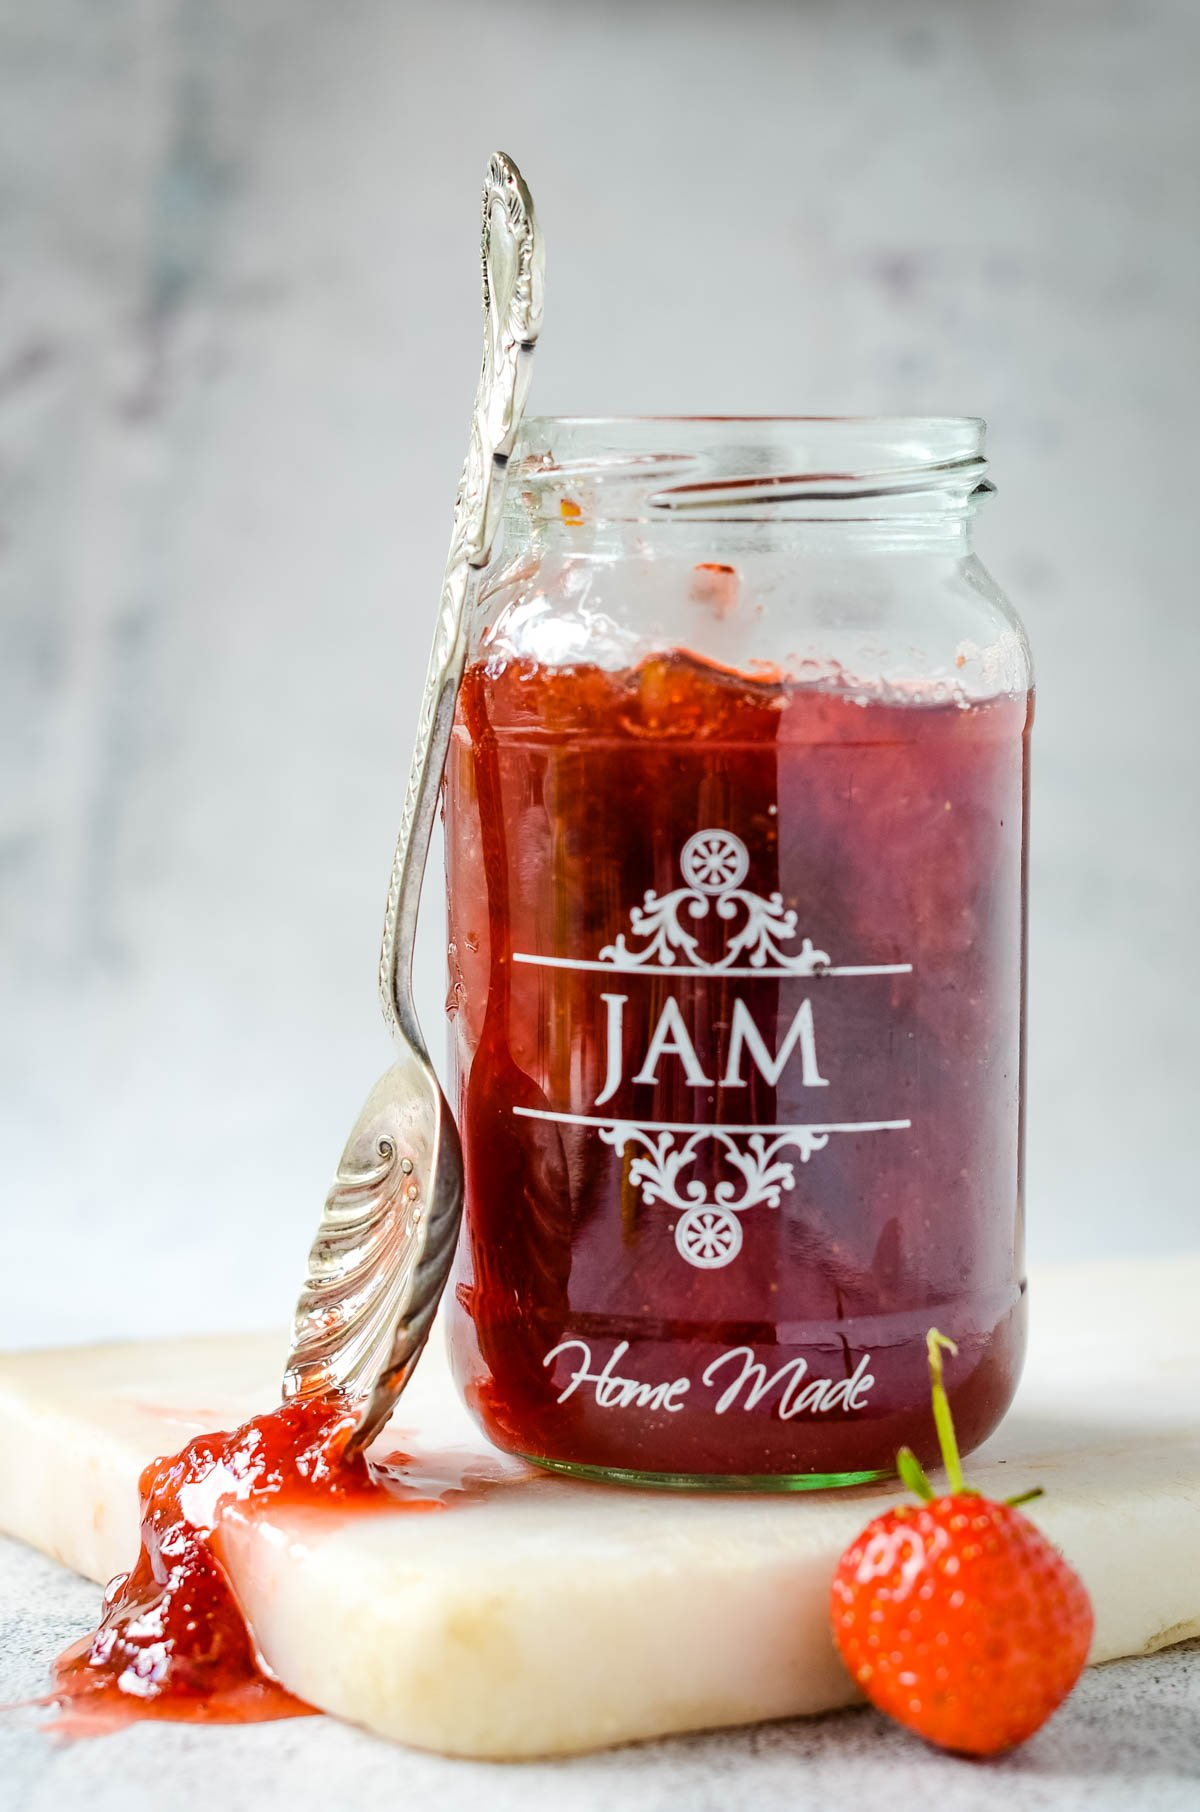 strawberry and rhubarb jam with spoon at side of jar